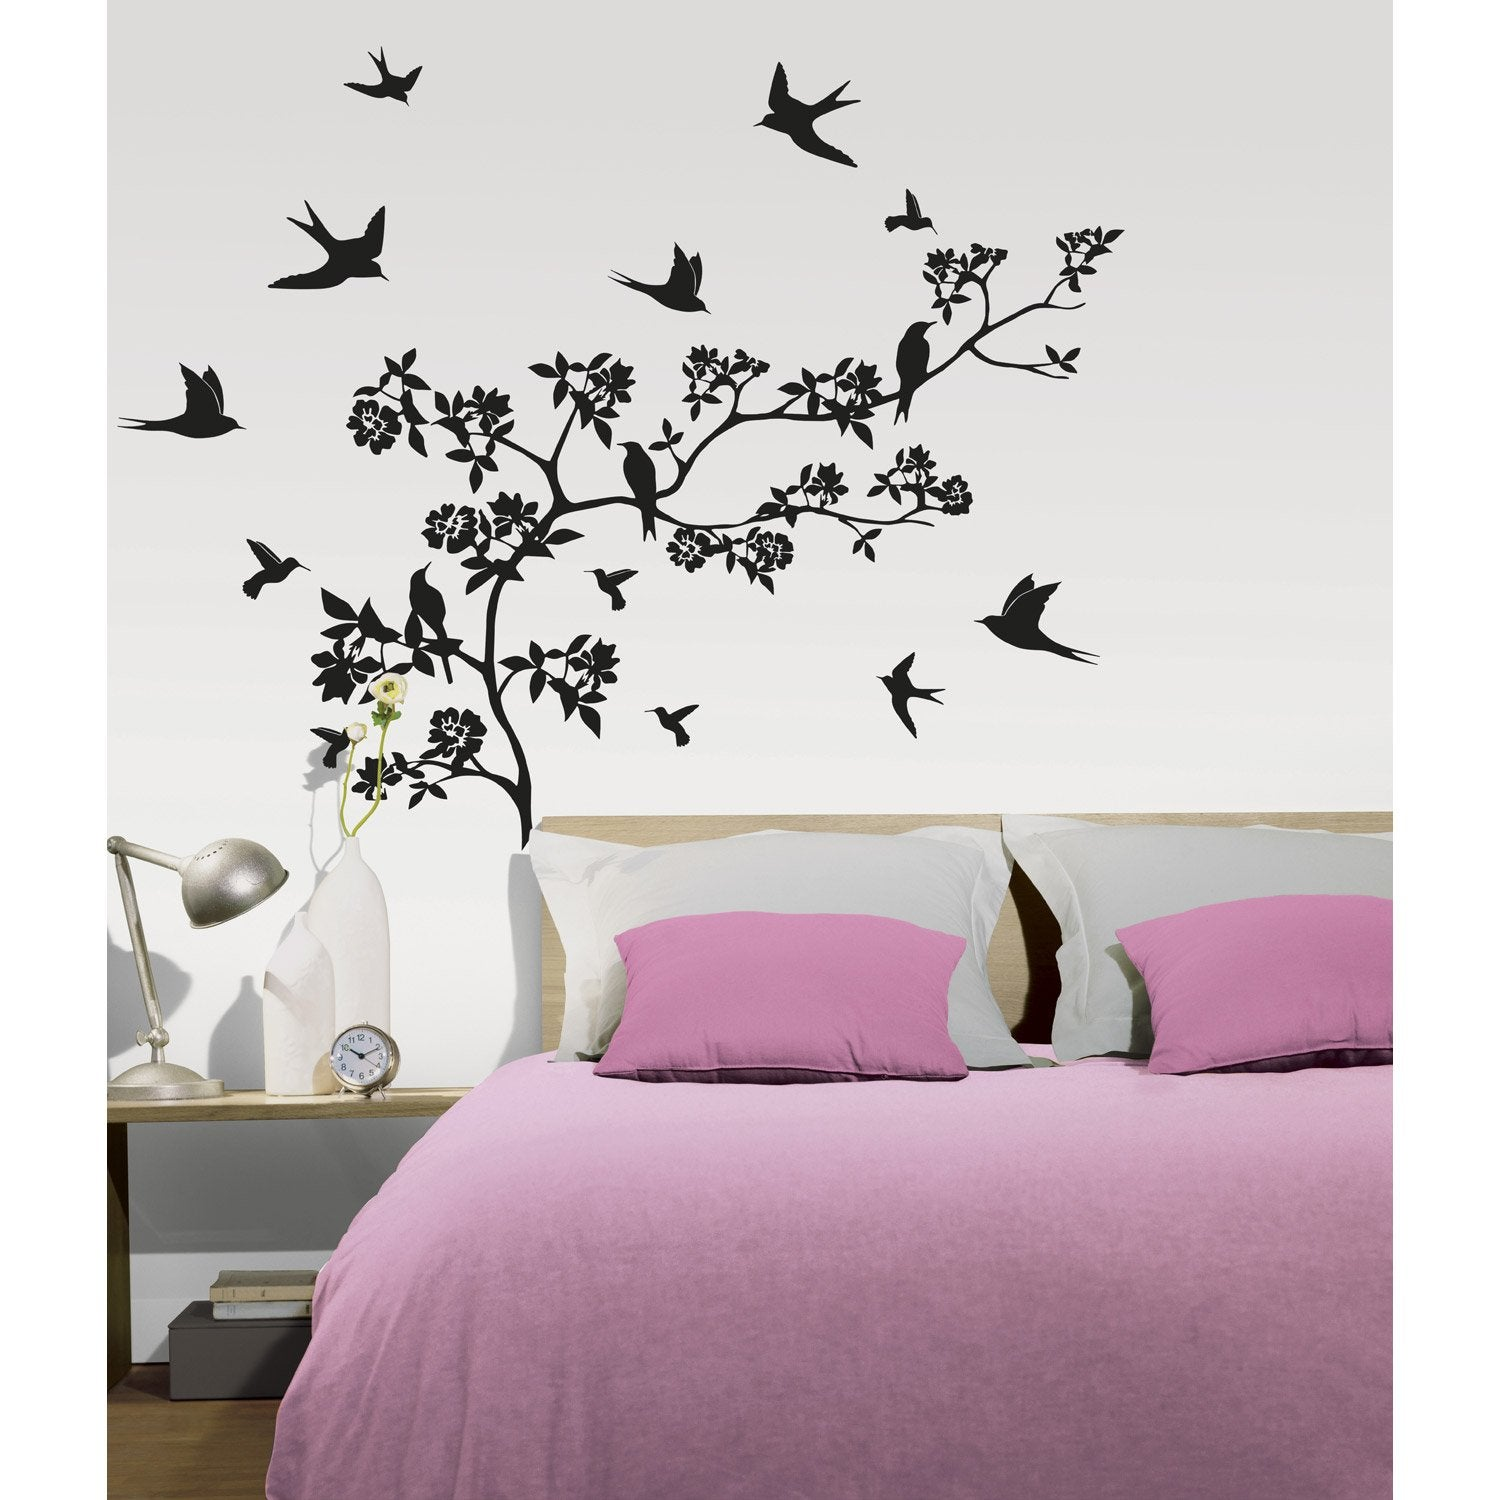 sticker paradise 47 x 67 cm leroy merlin. Black Bedroom Furniture Sets. Home Design Ideas